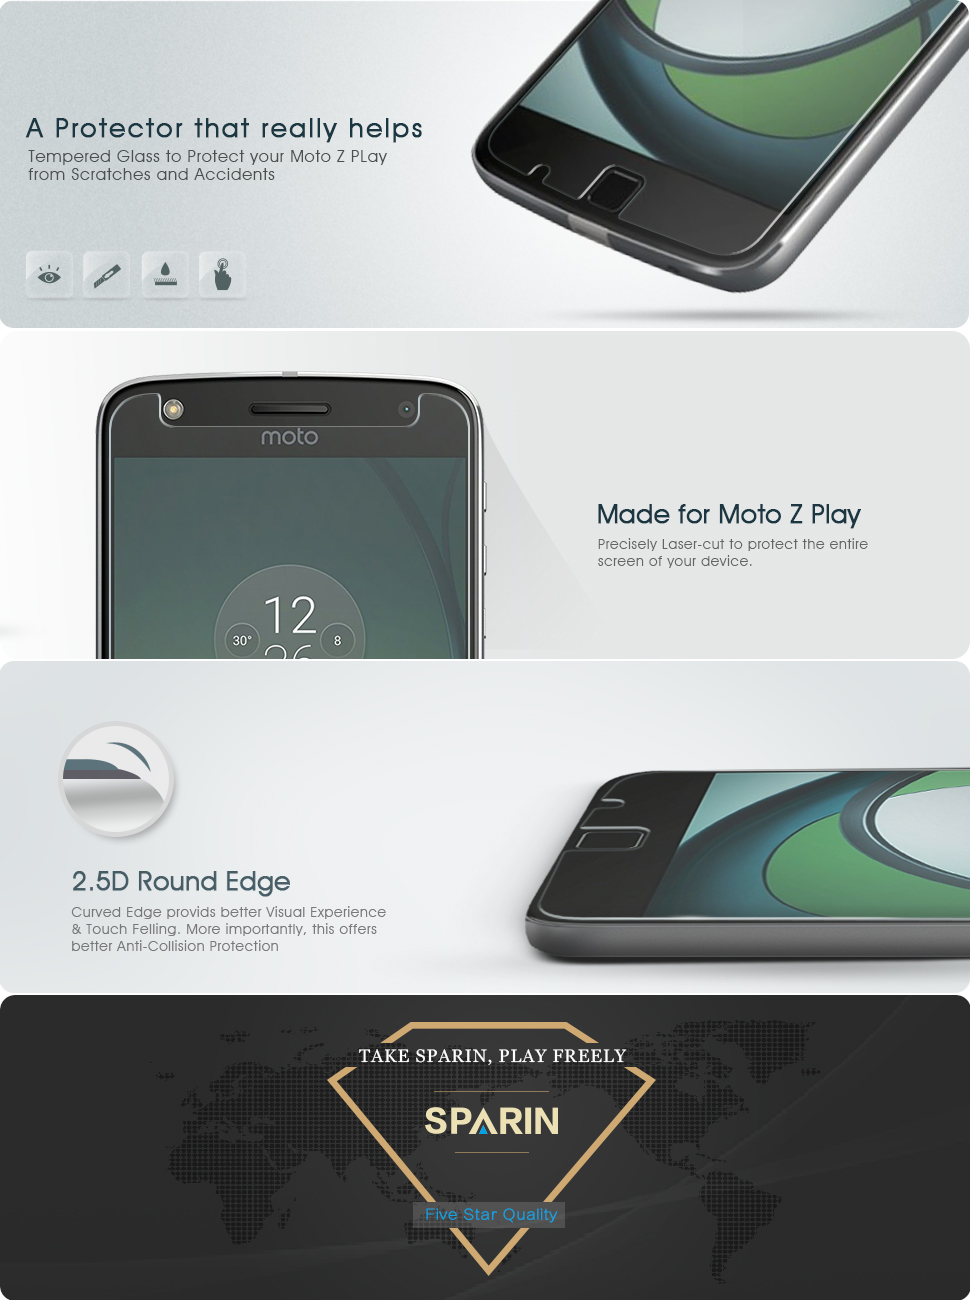 Sparin Moto Z Play Droid Tempered Glass Screen Protector [25d Round Edge]  [high Definition] [antiscratch]